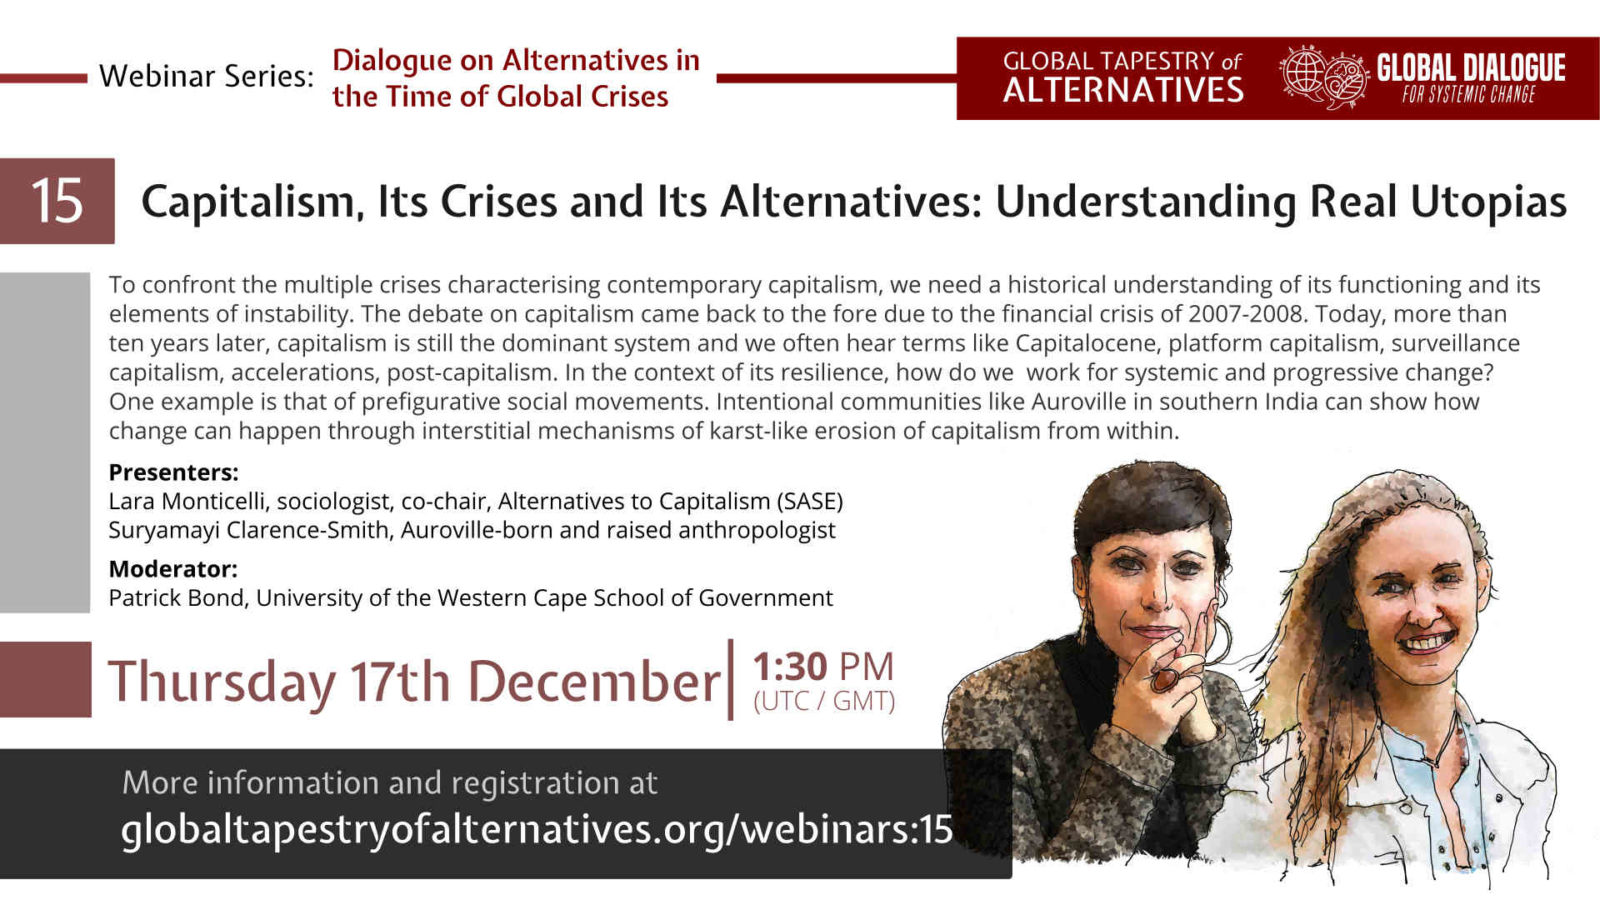 capitalism-its-crises-and-its-alternatives-understanding-real-utopias